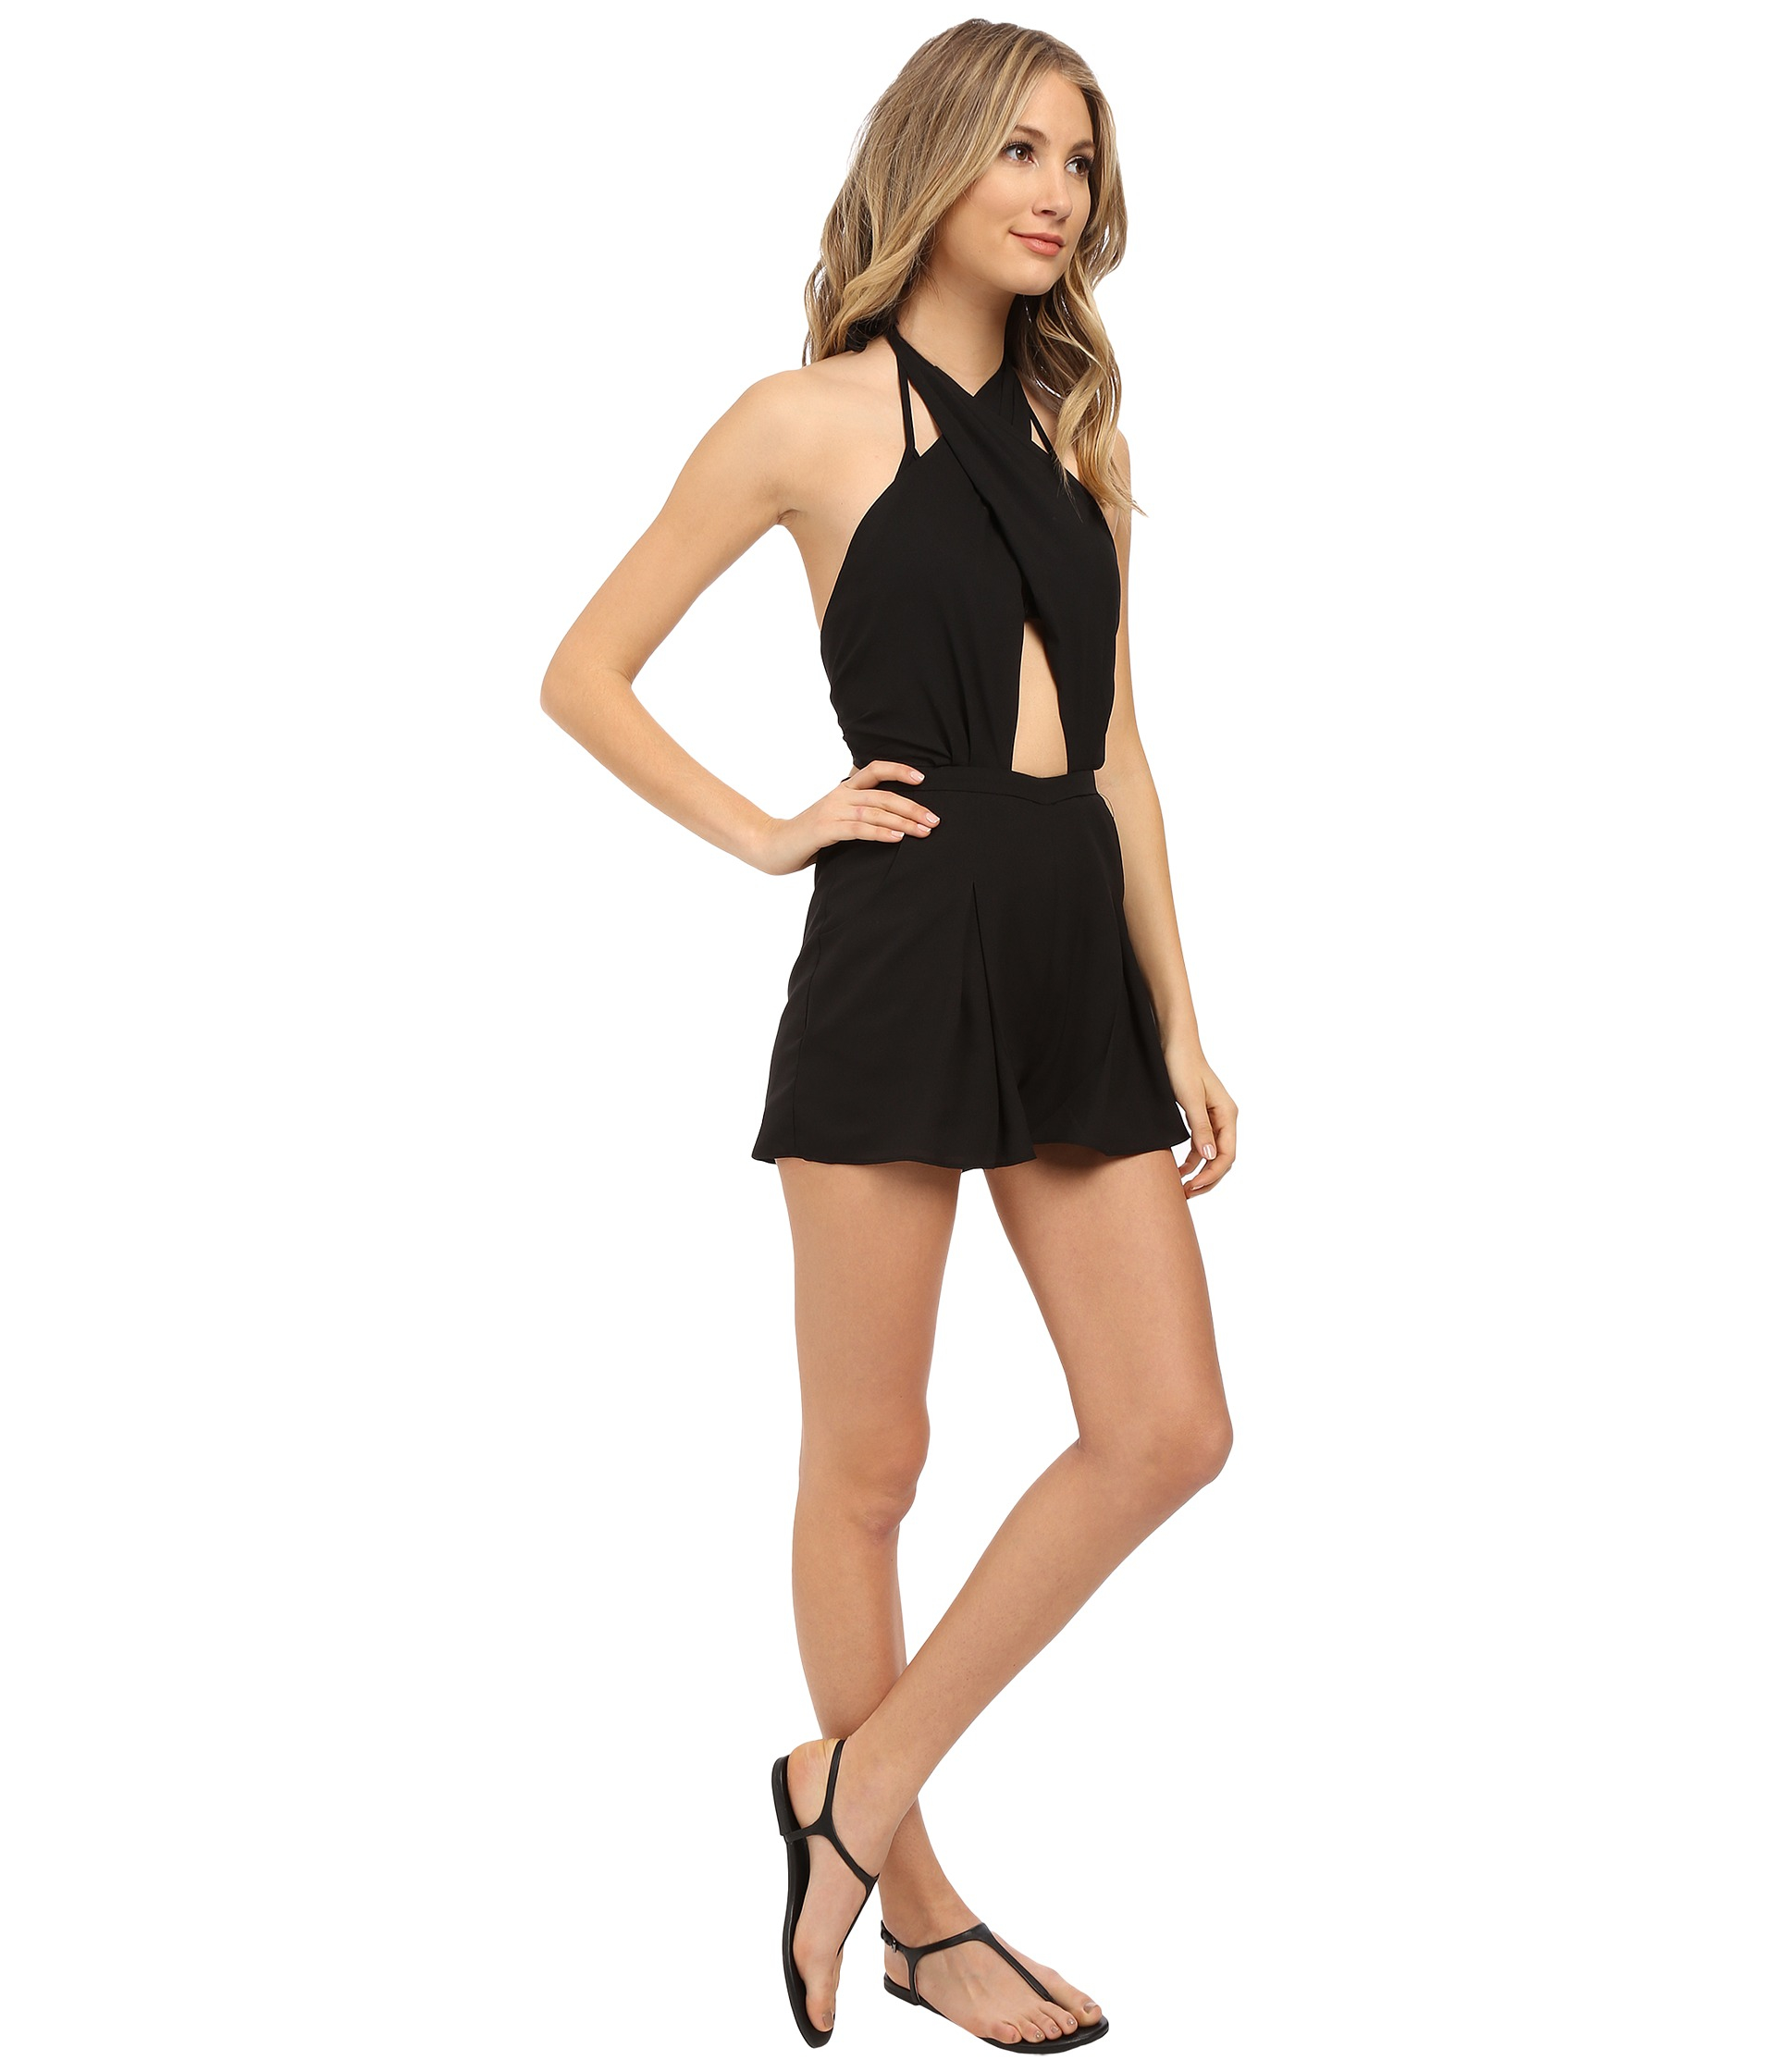 8ae15aee2ad Lyst - 6 Shore Road By Pooja Chiva Romper Cover-up in Black